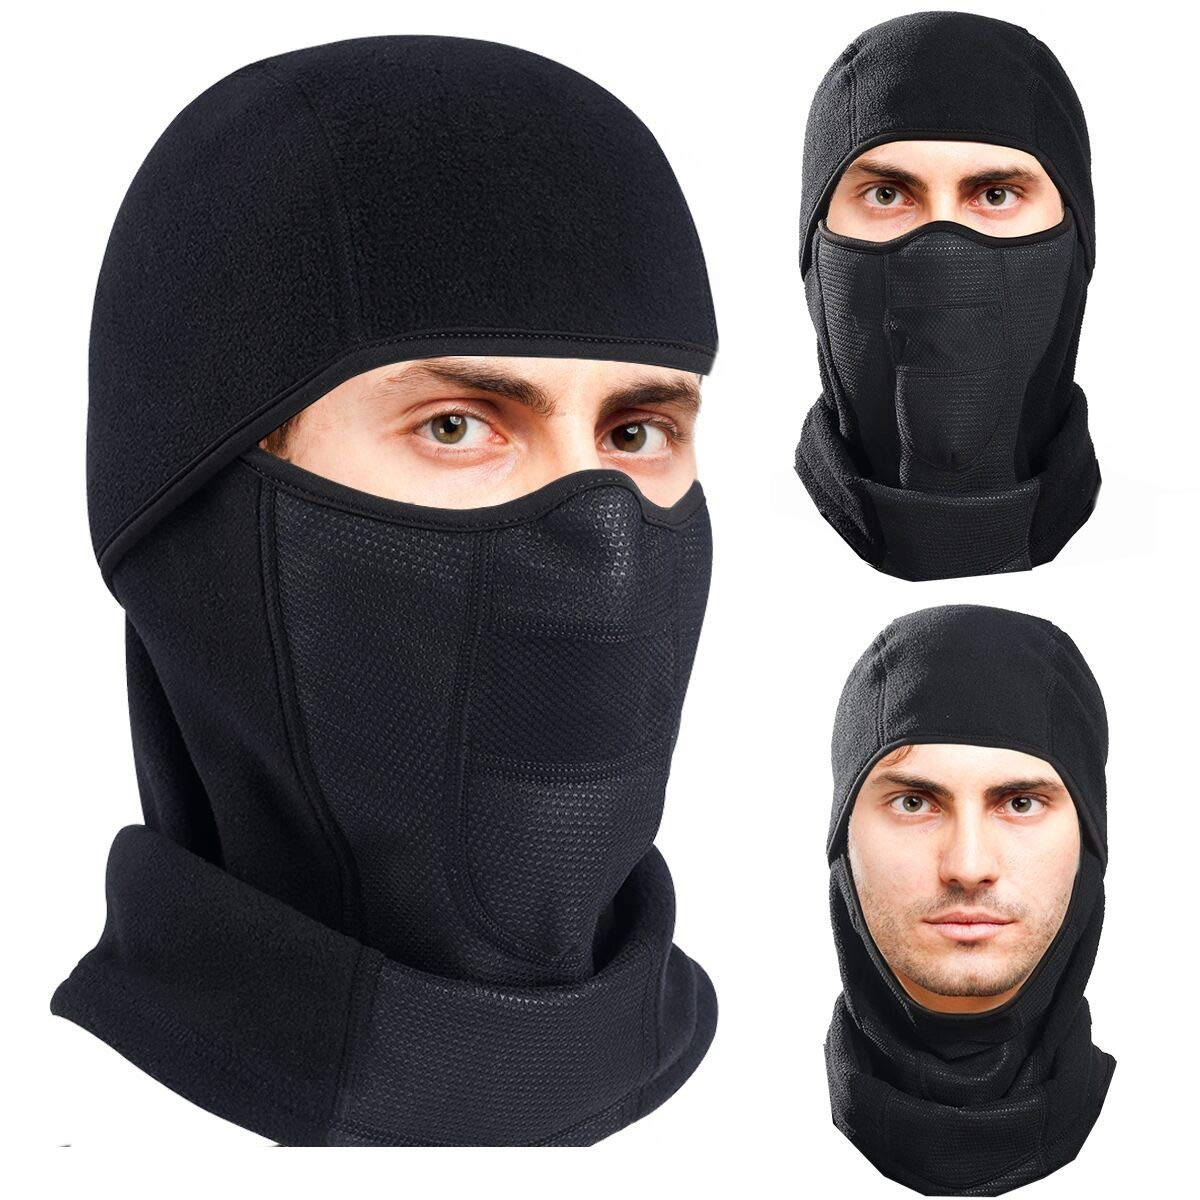 Winter Warm Full Face Mask Ski Motorcycle Thermal Balaclava Hat Breathable Vents